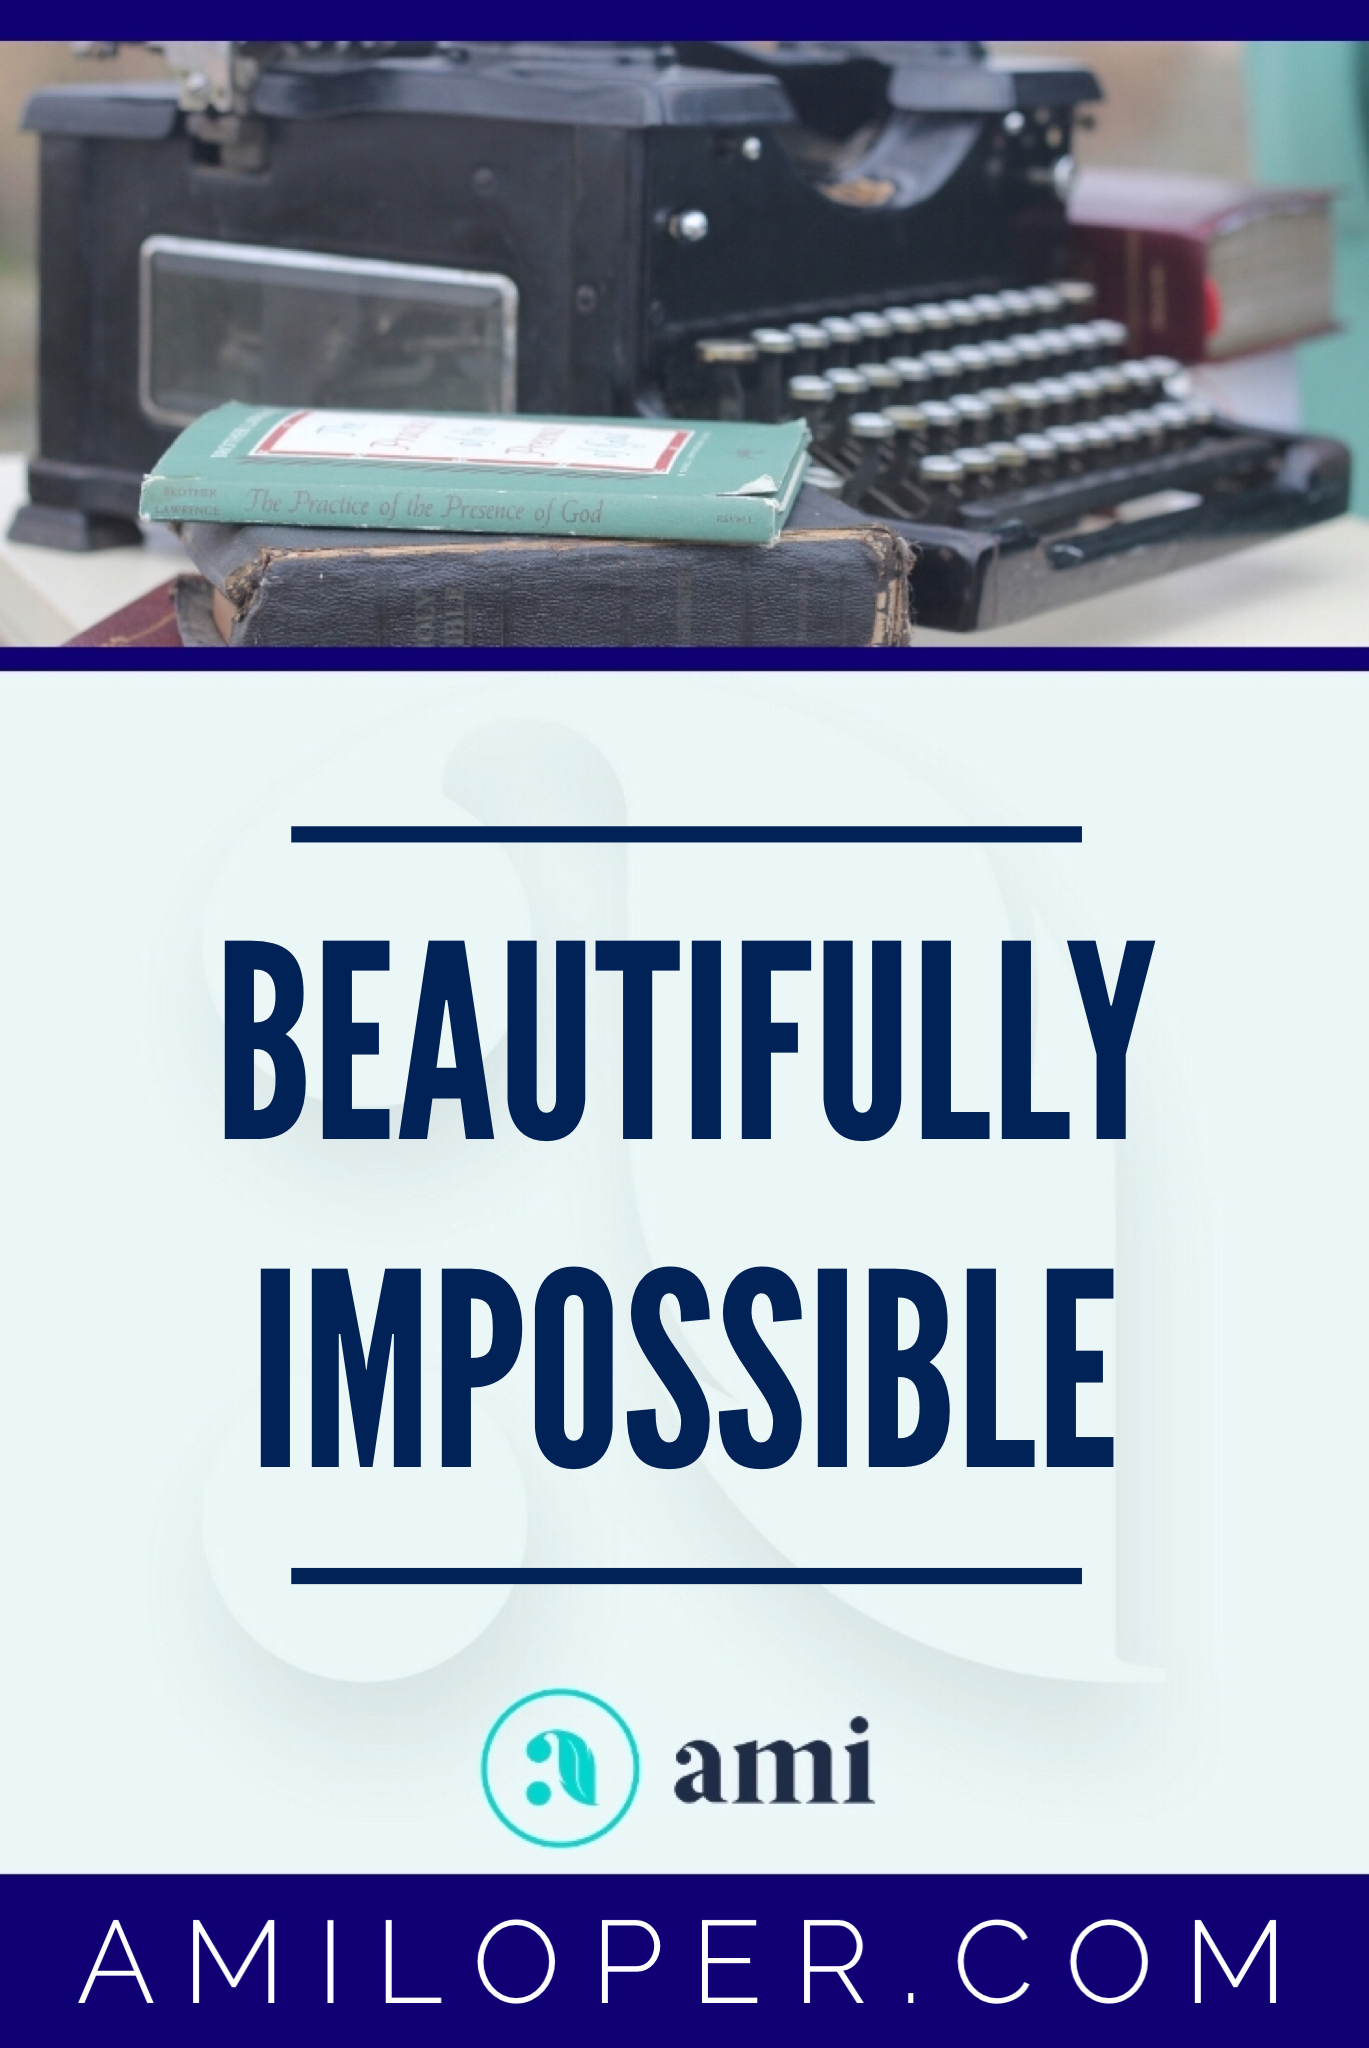 Have you ever felt stuck? - just absolutely wedged between the impossibilities of life? Look out! Something beautiful happens when everything feels impossible! #impossible #feelingStuck #ChristianBlog